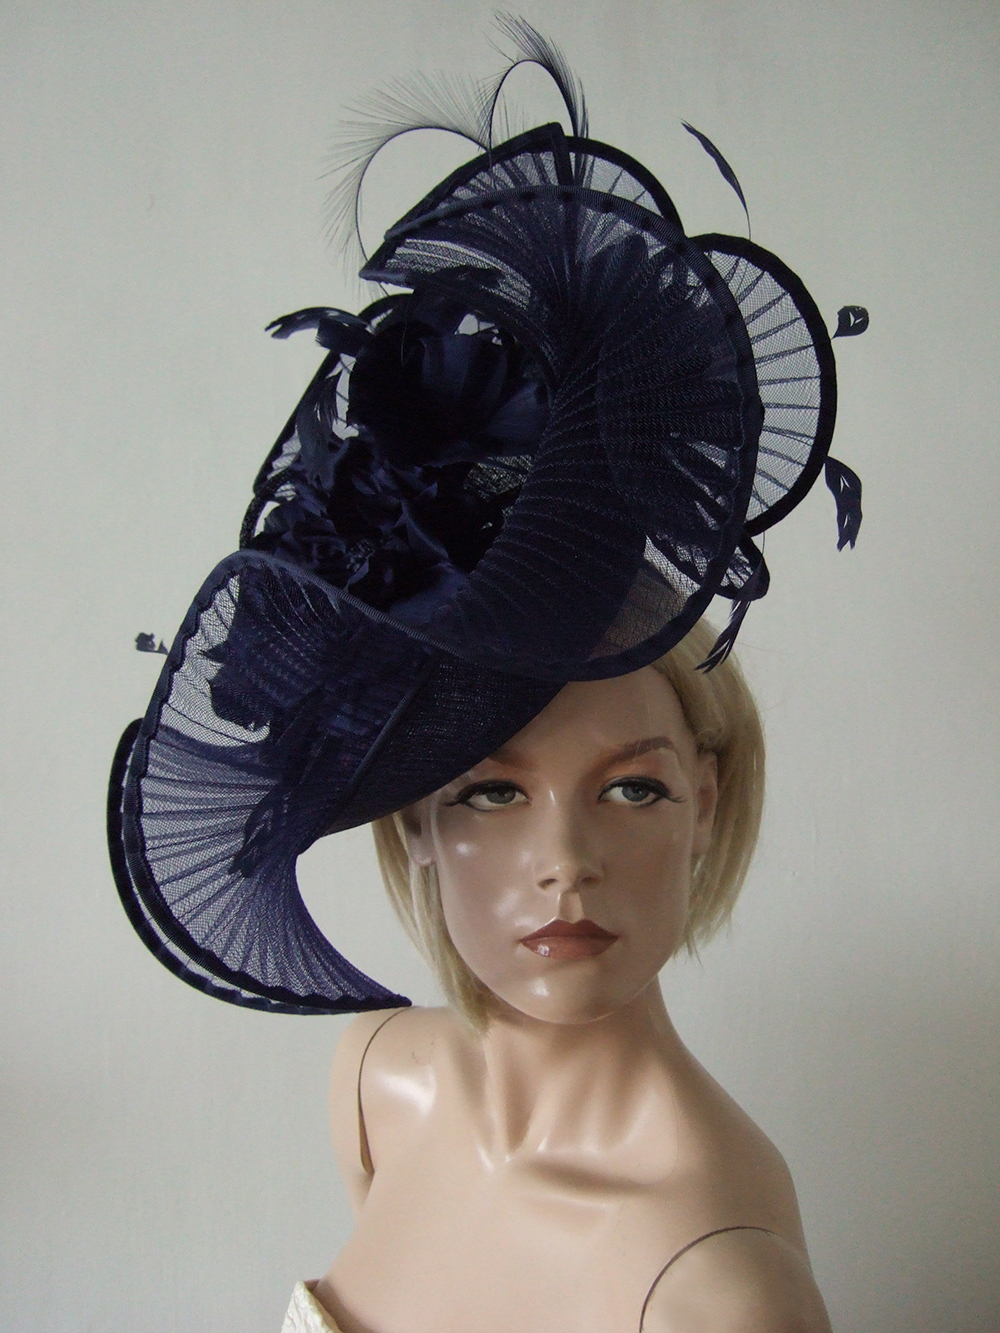 Navy Designer Hats for Hire near London. Royal Ascot Hat Rental 2021. Hire Hats for Wedding Guests UK. Best Royal Ascot Hats 2021. Designer Hats for Hire 2021. Navy Floral Fascinators. Hats to wear with a Navy dress. Wedding Hats for Hire UK 2021. Amazing Hats for the Races 2021. Navy Blue Mother of the Bride Hat Hire 2021.